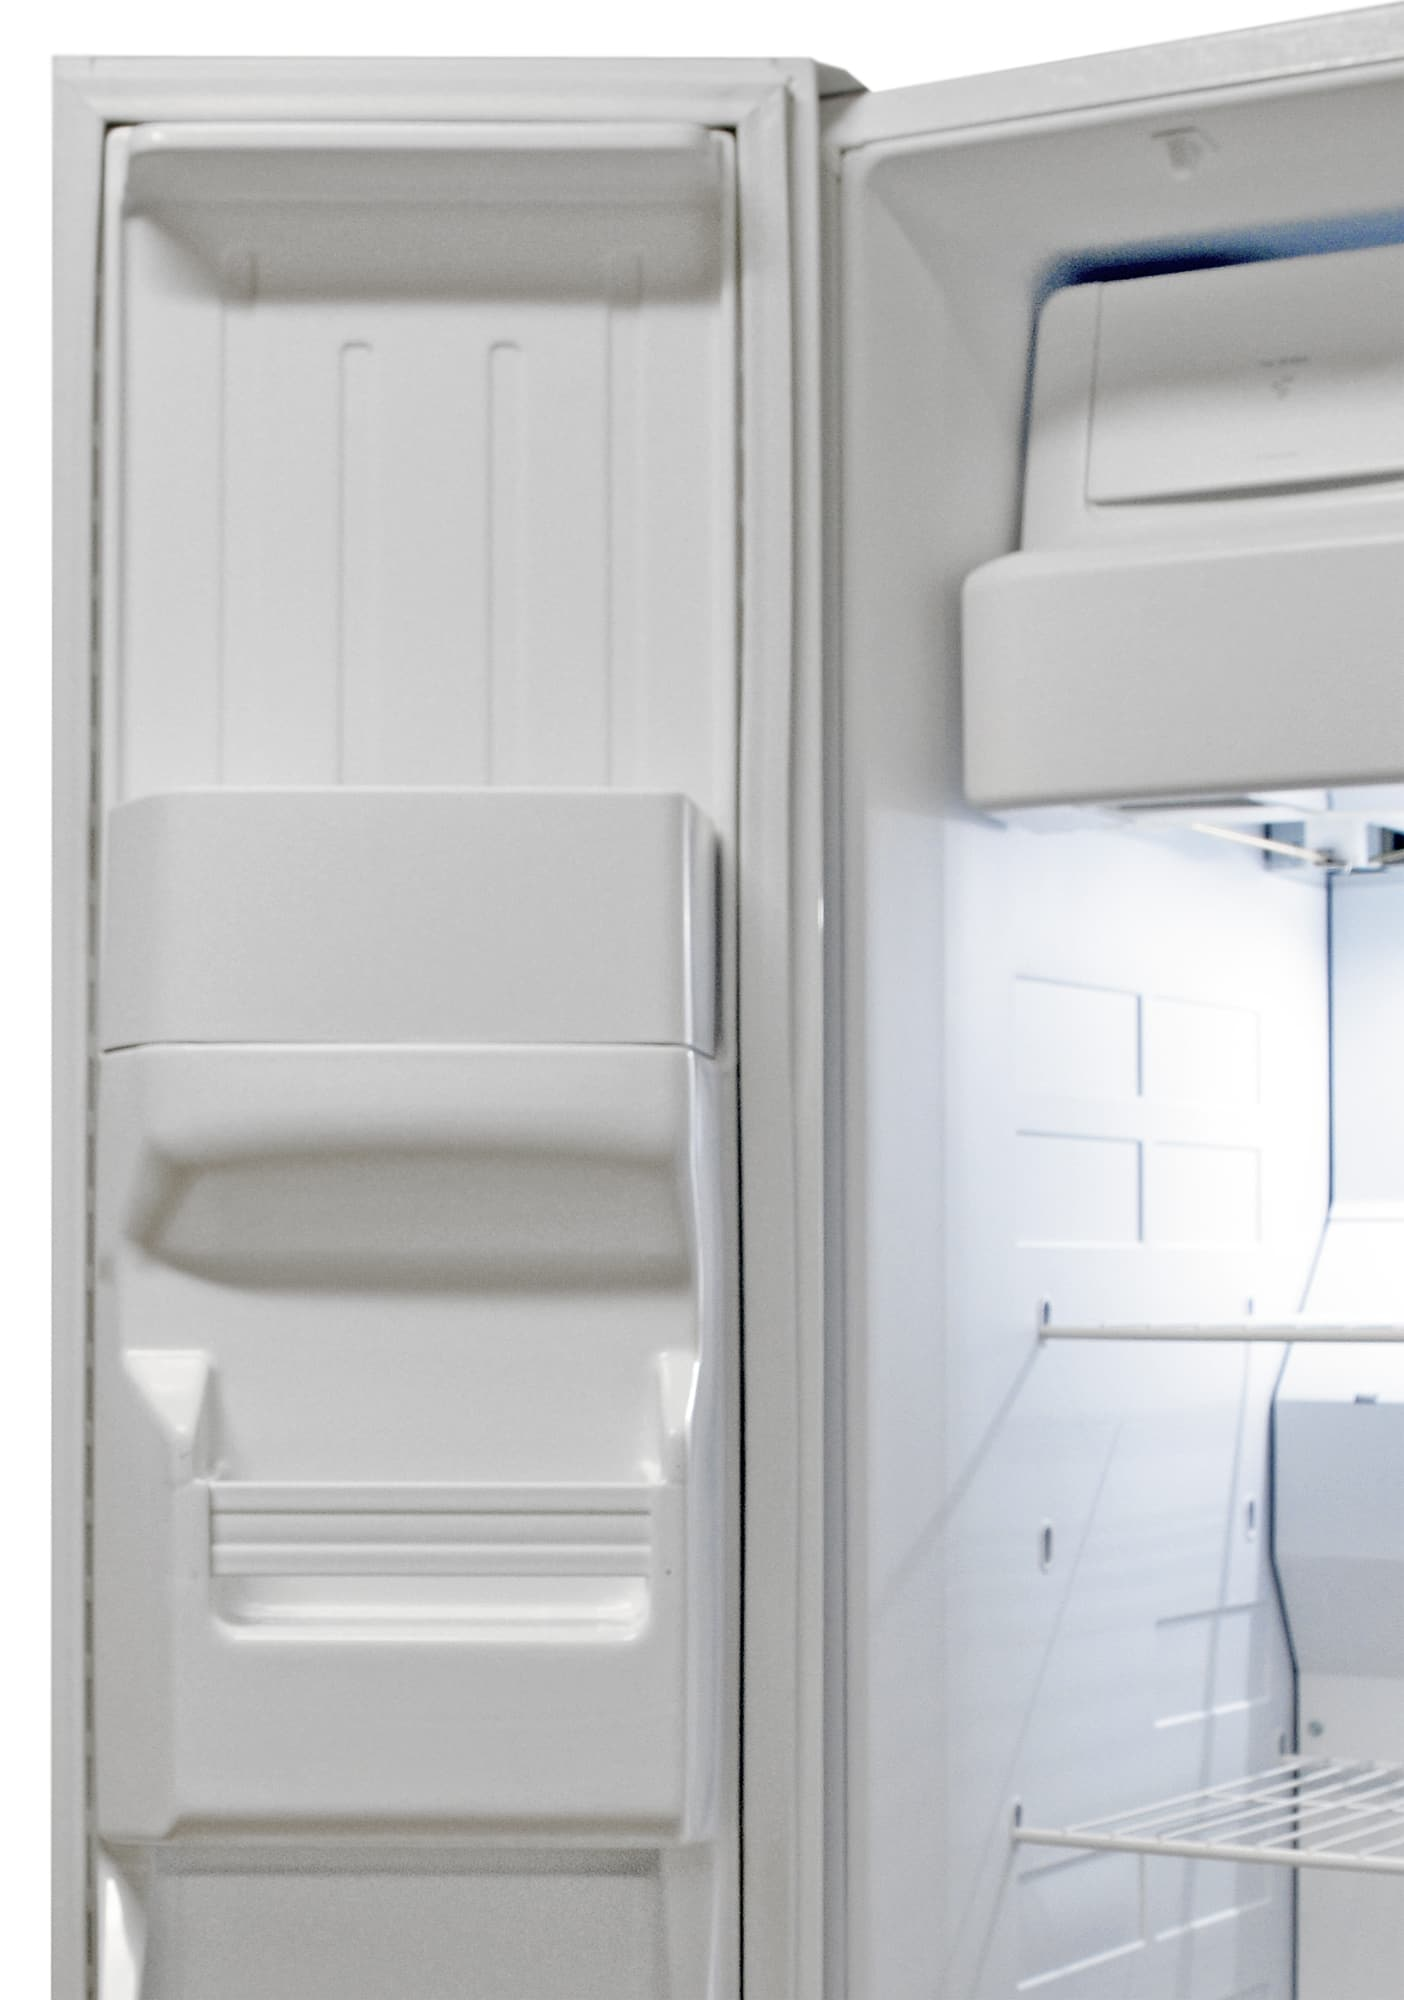 Most of the Kenmore 51122's freezer door lacks storage due to the large ice dispenser.